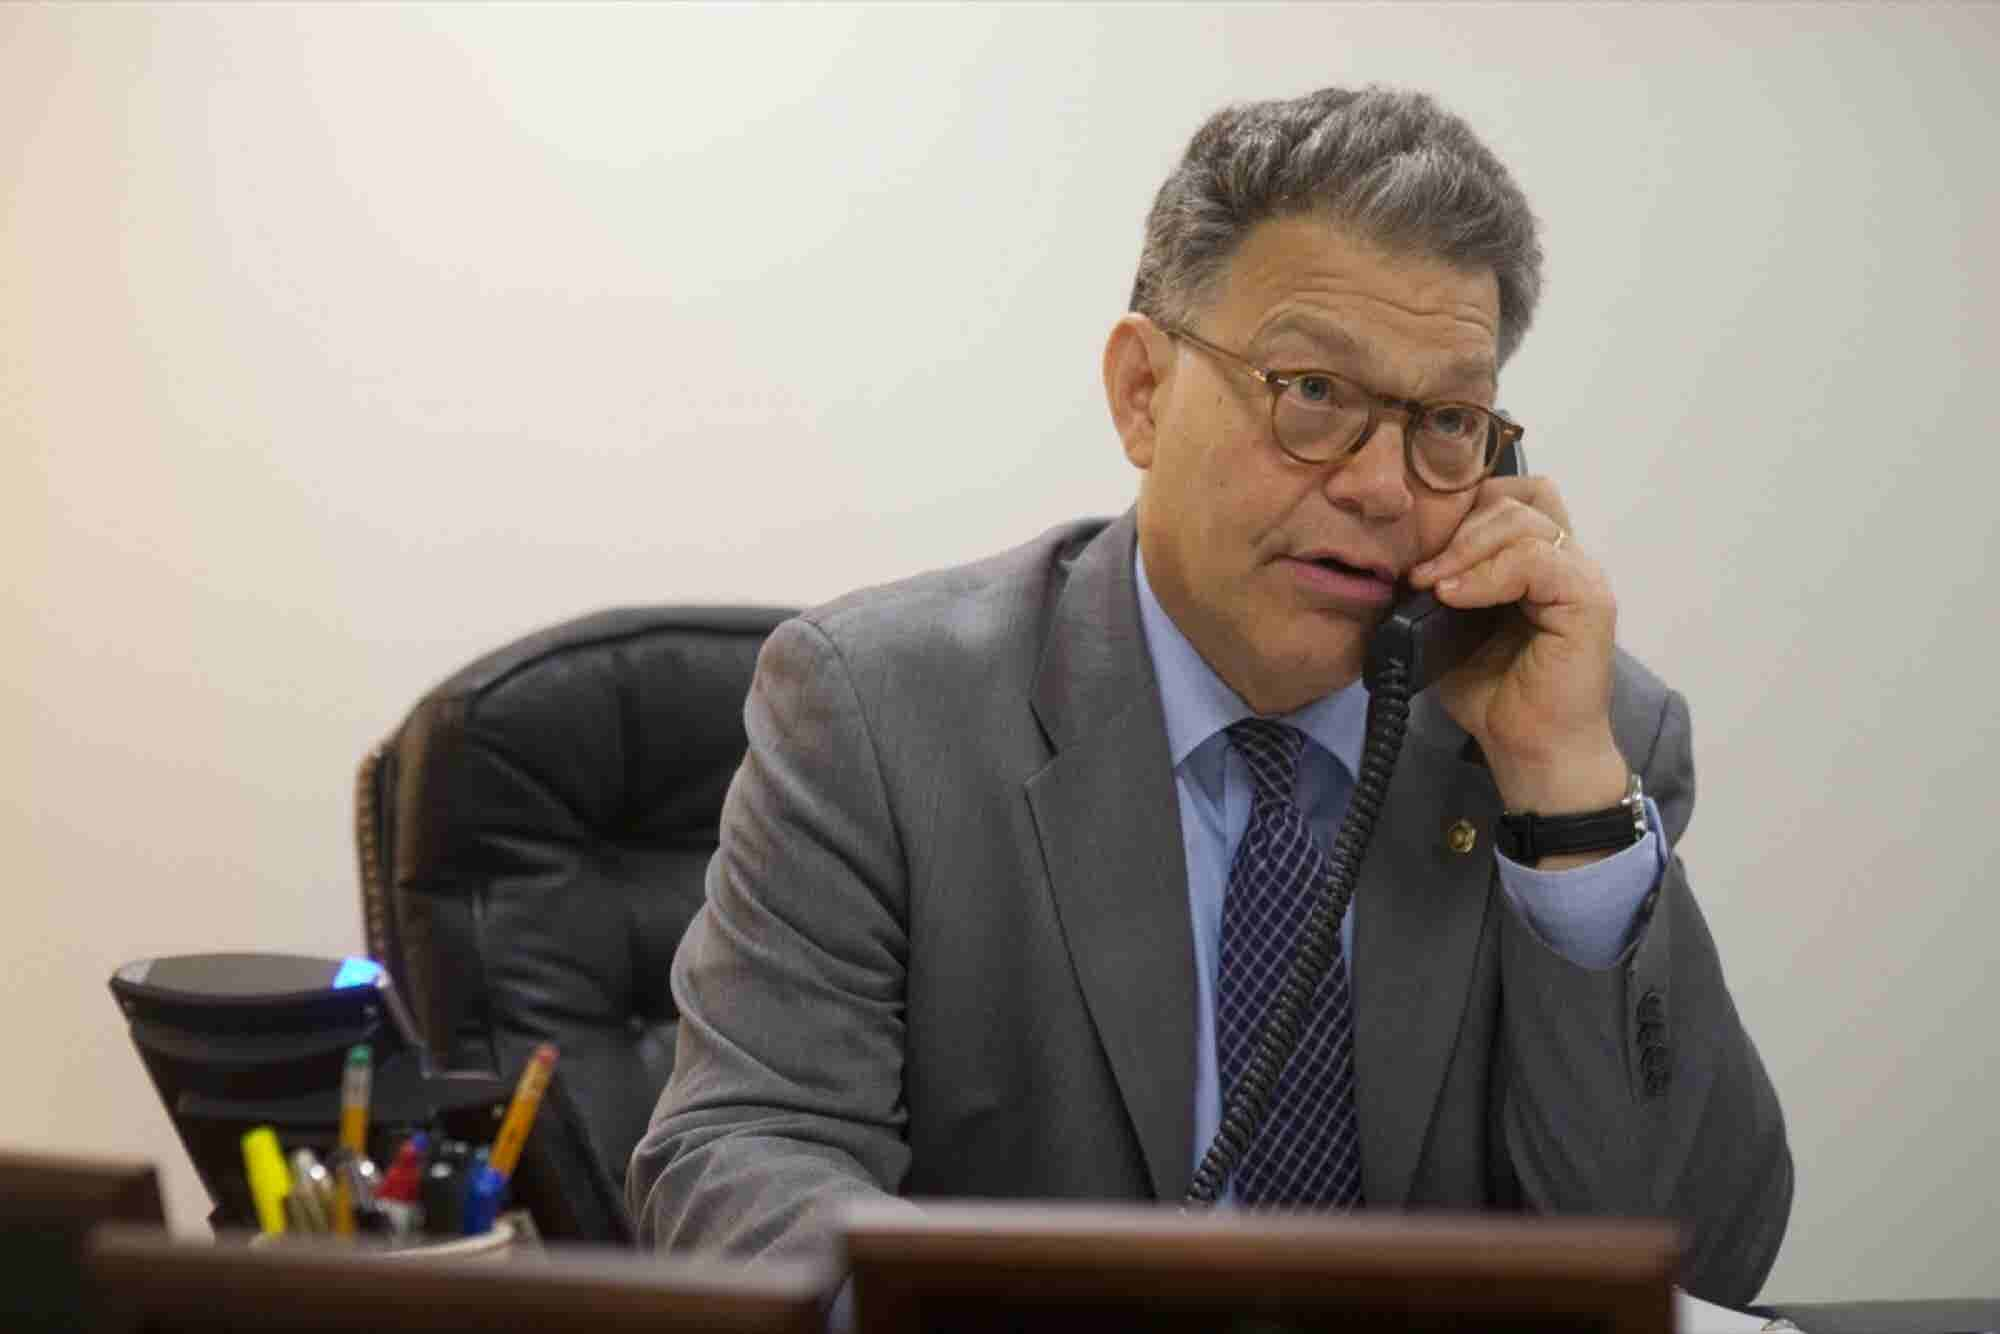 Why Does Senator Al Franken Make Cold Calls?